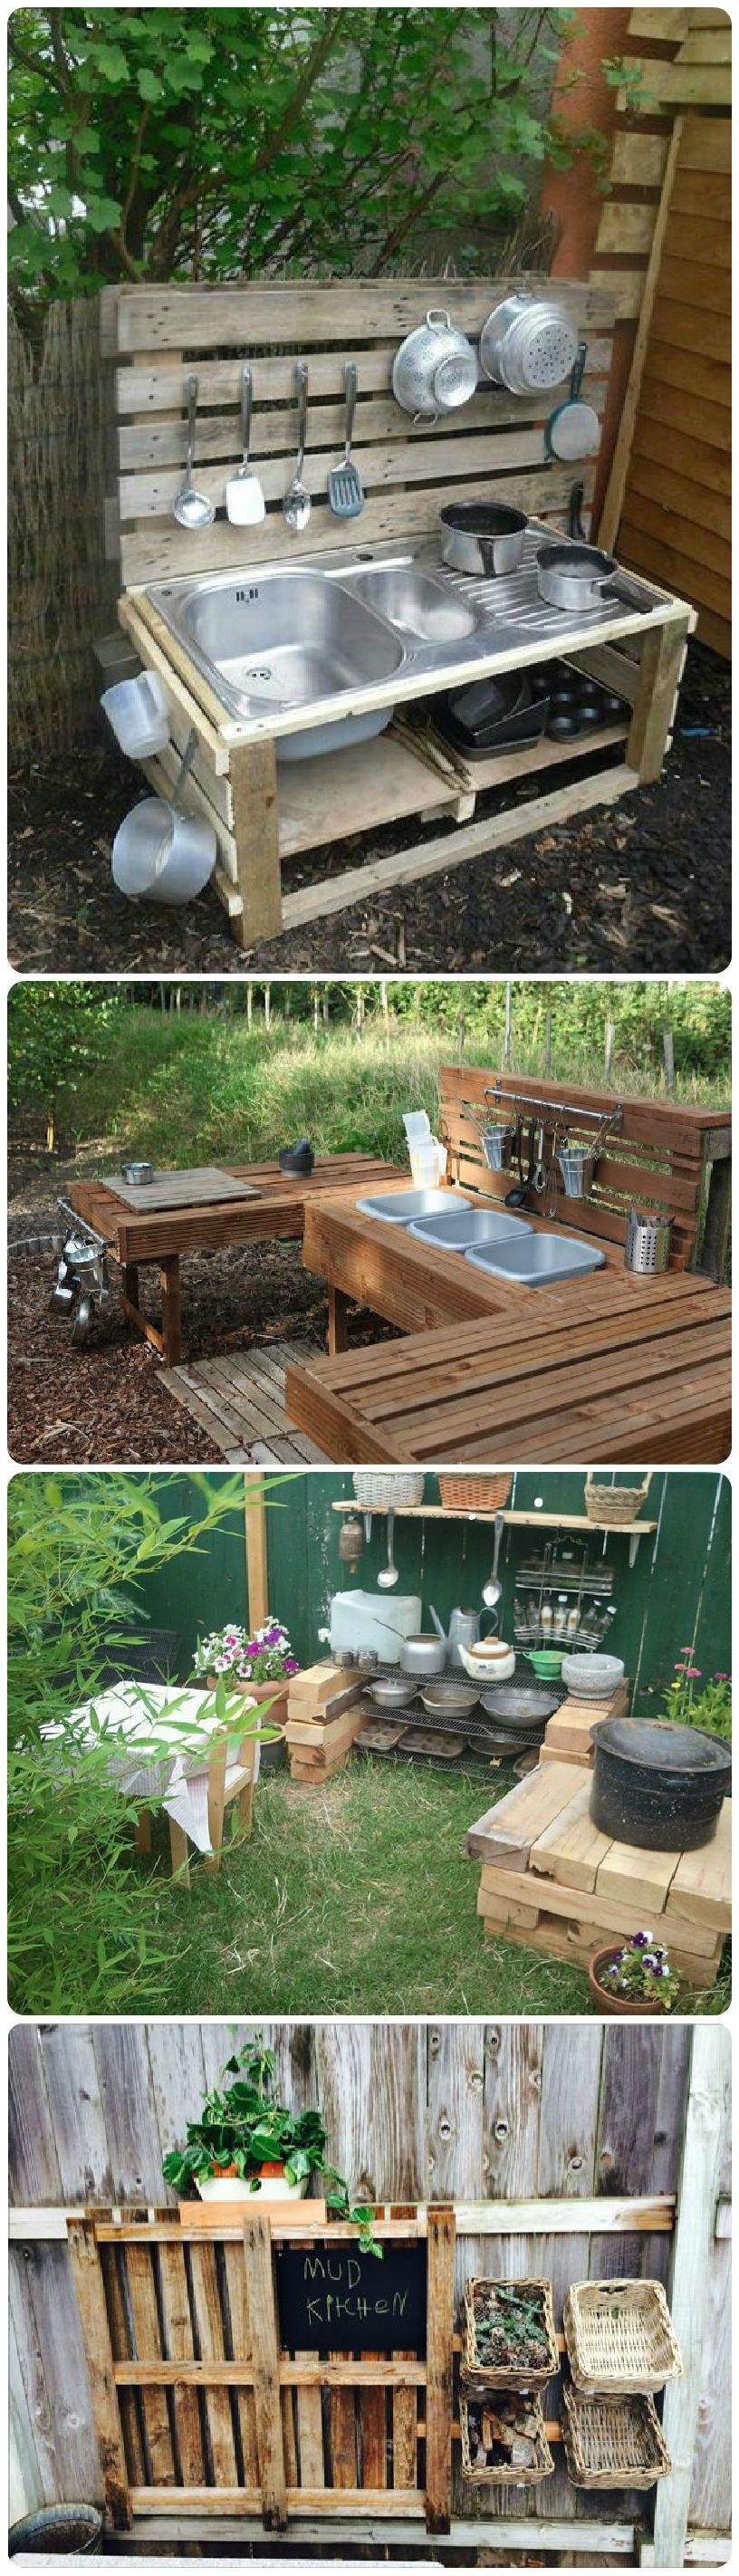 Top 20 Of Mud Kitchen Ideas For Kids Palygroud Pinterest